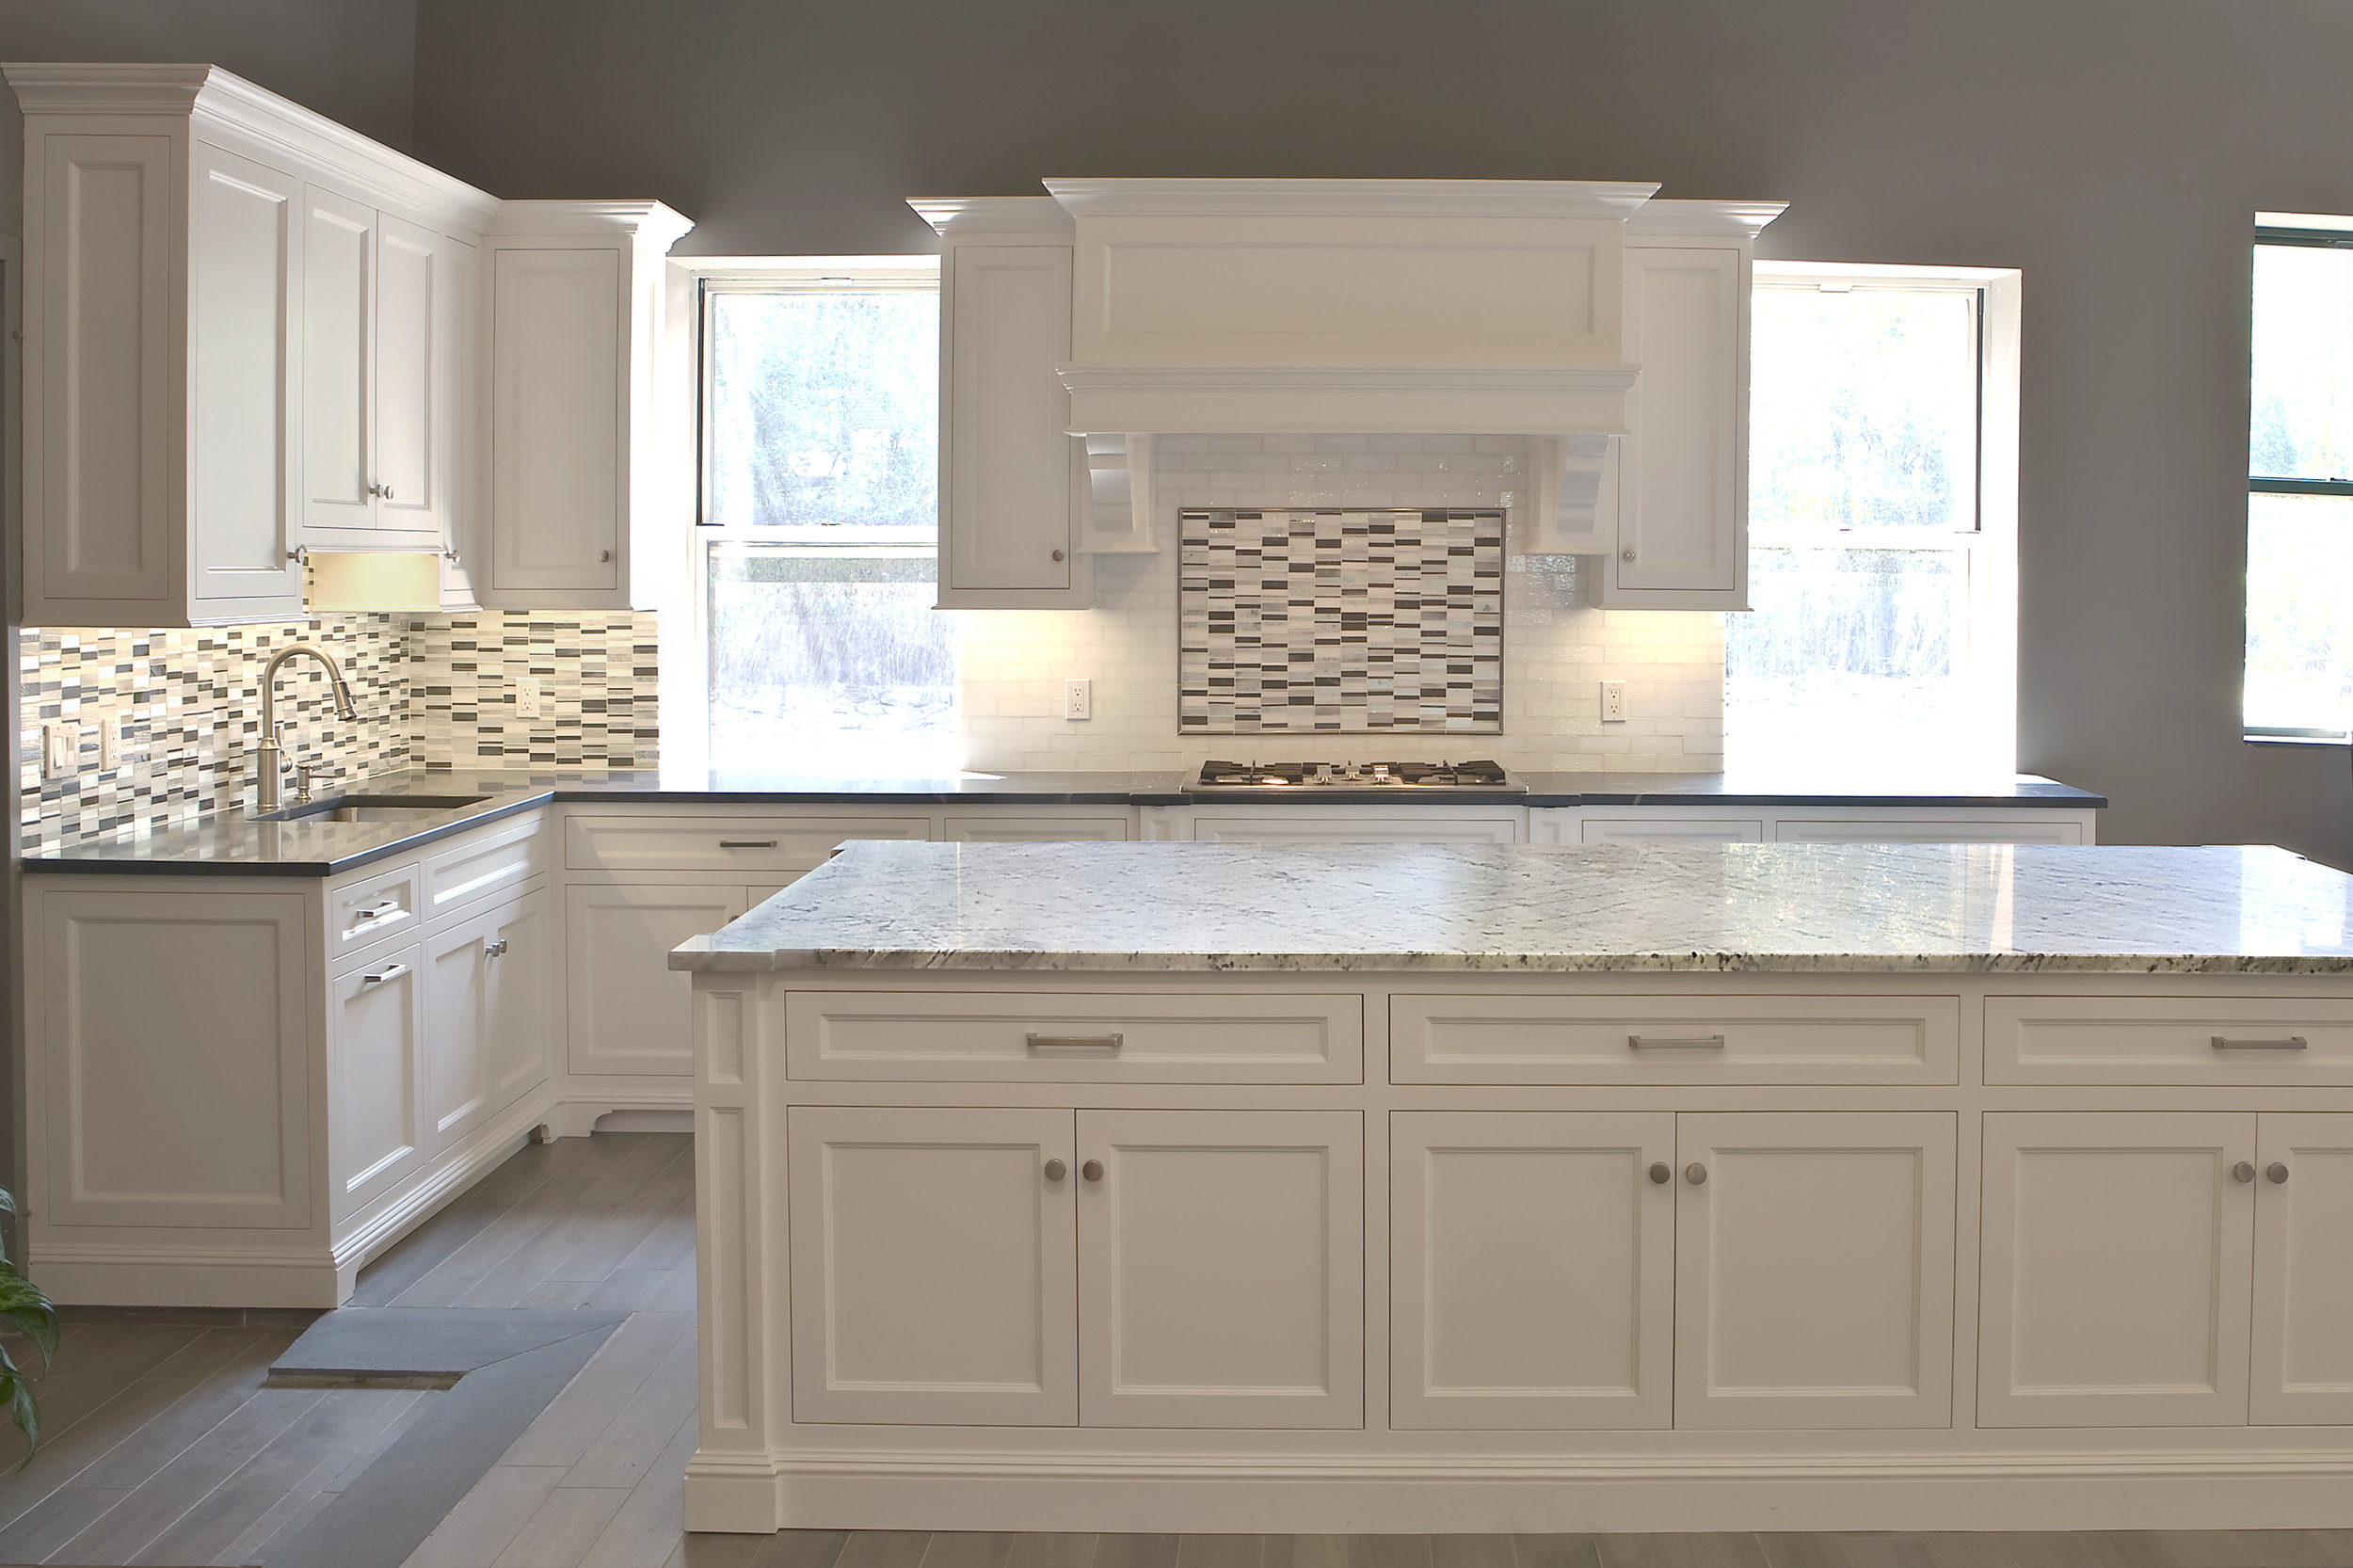 MATERIALS USED: CARERRA MARBLE ISLAND AND SOAPSTONE BACK COUNTER